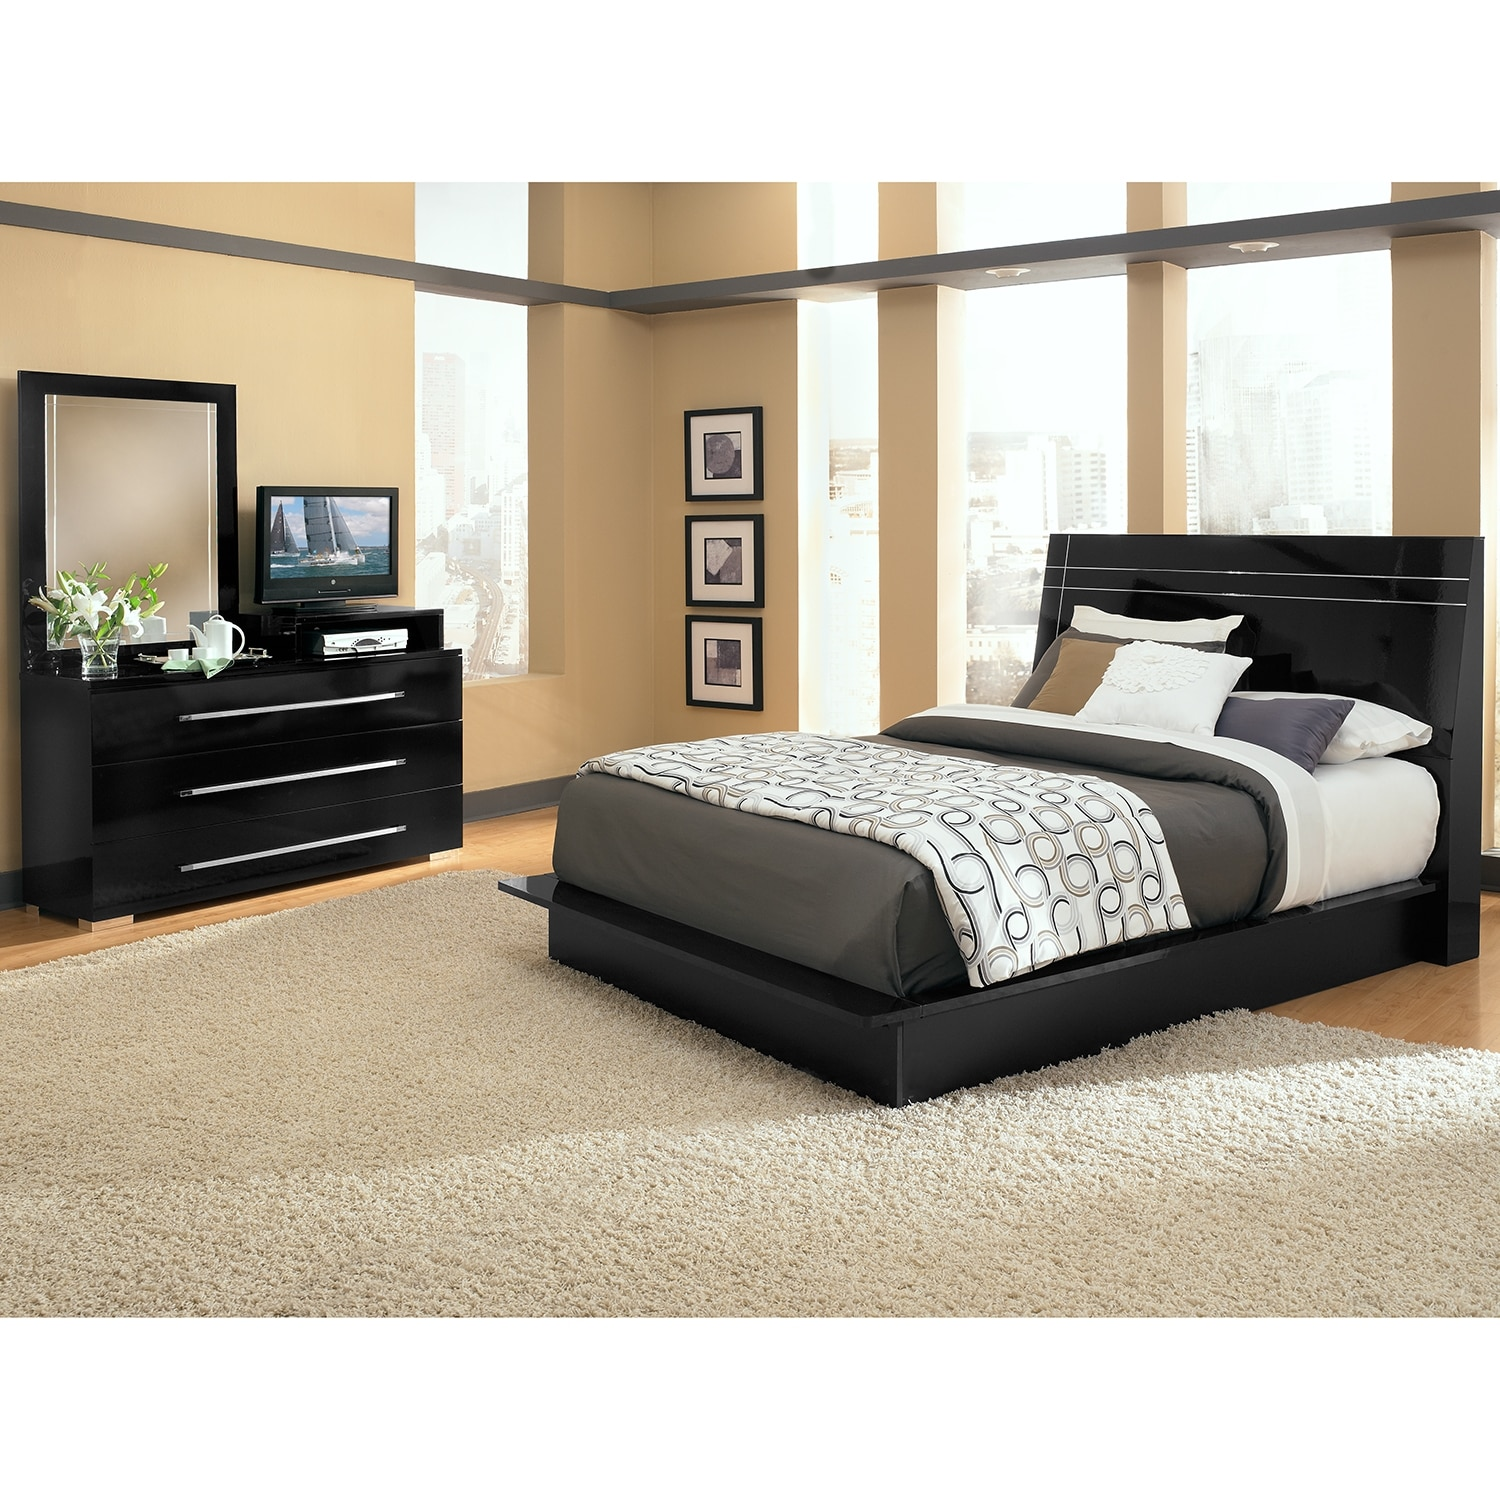 Dimora 5 piece queen panel bedroom set with media dresser - Black queen bedroom furniture set ...